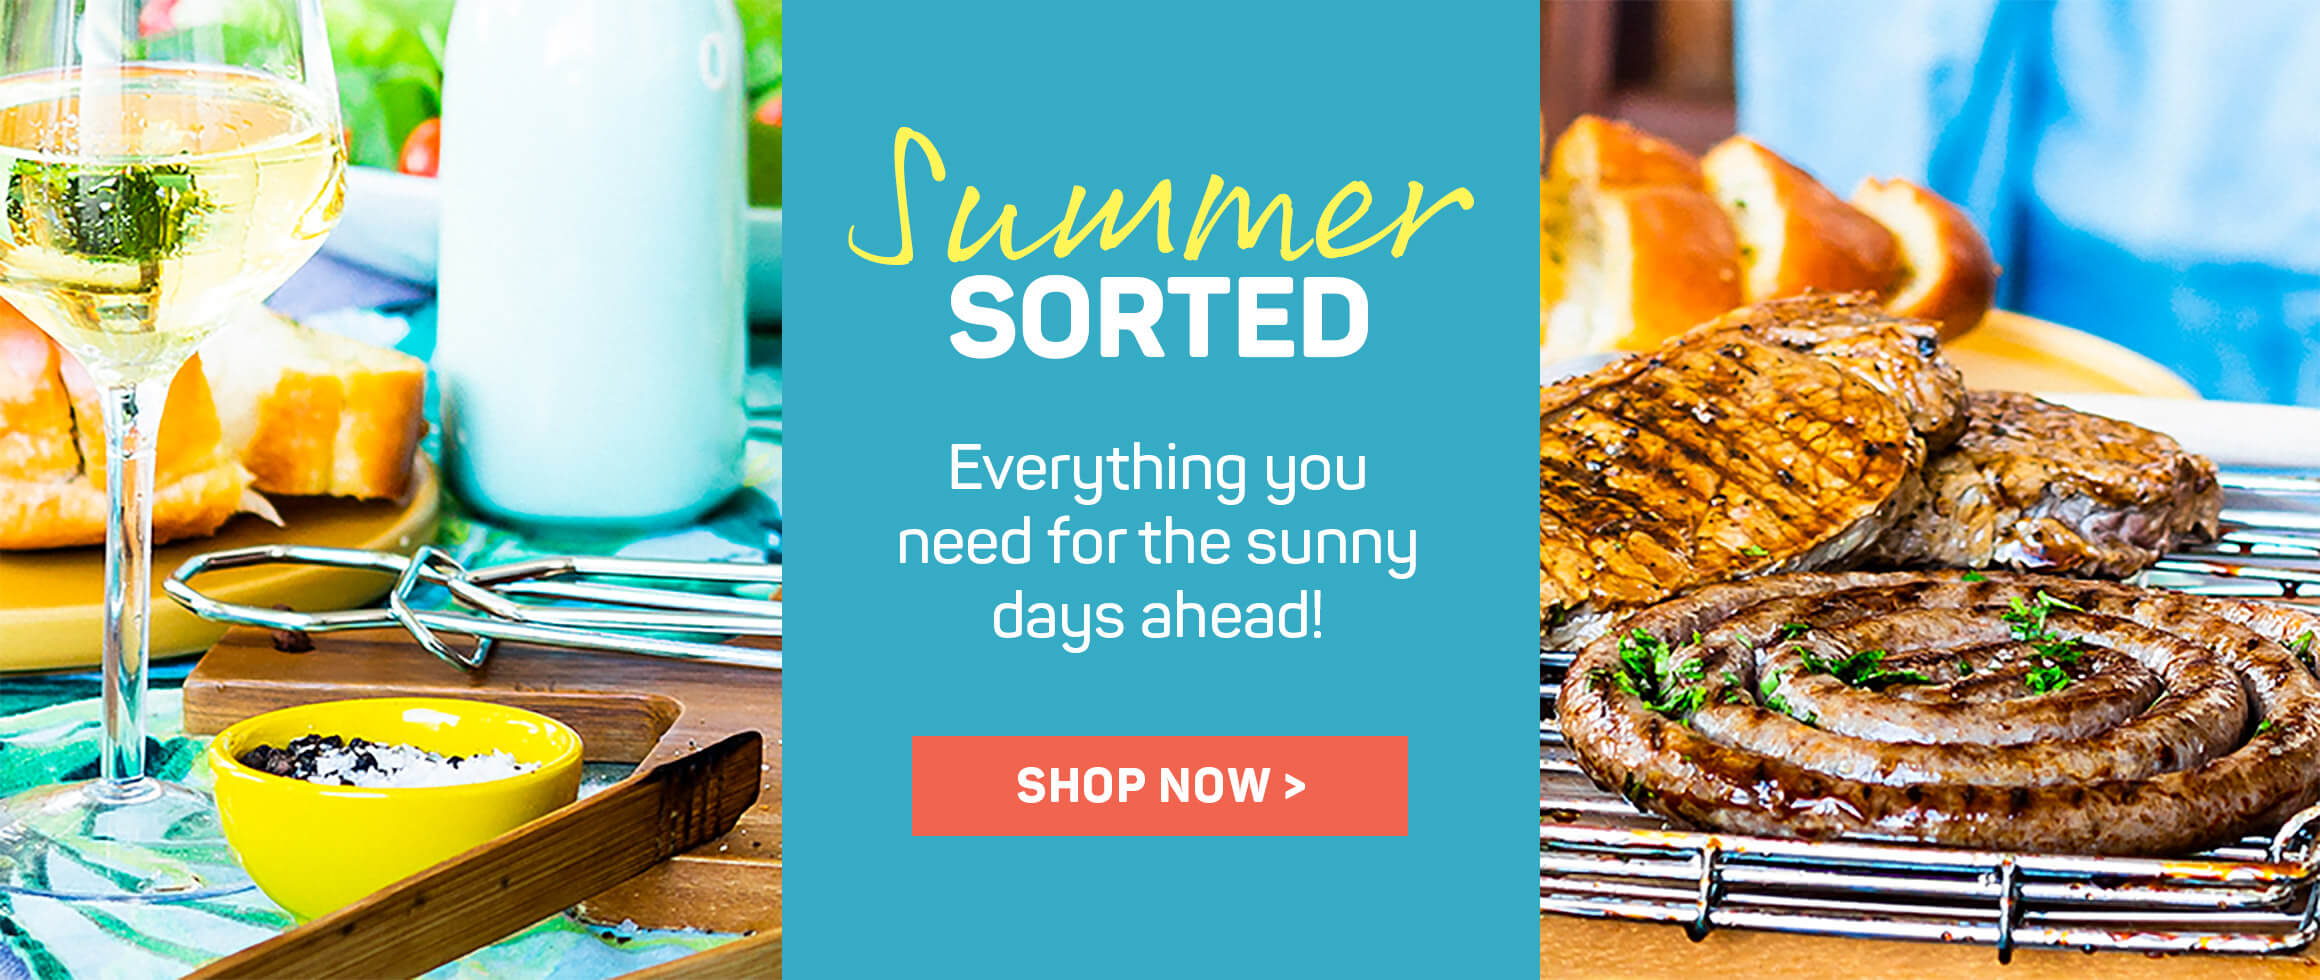 Summer sorted. Everything you need for the sunny days ahead! Shop now